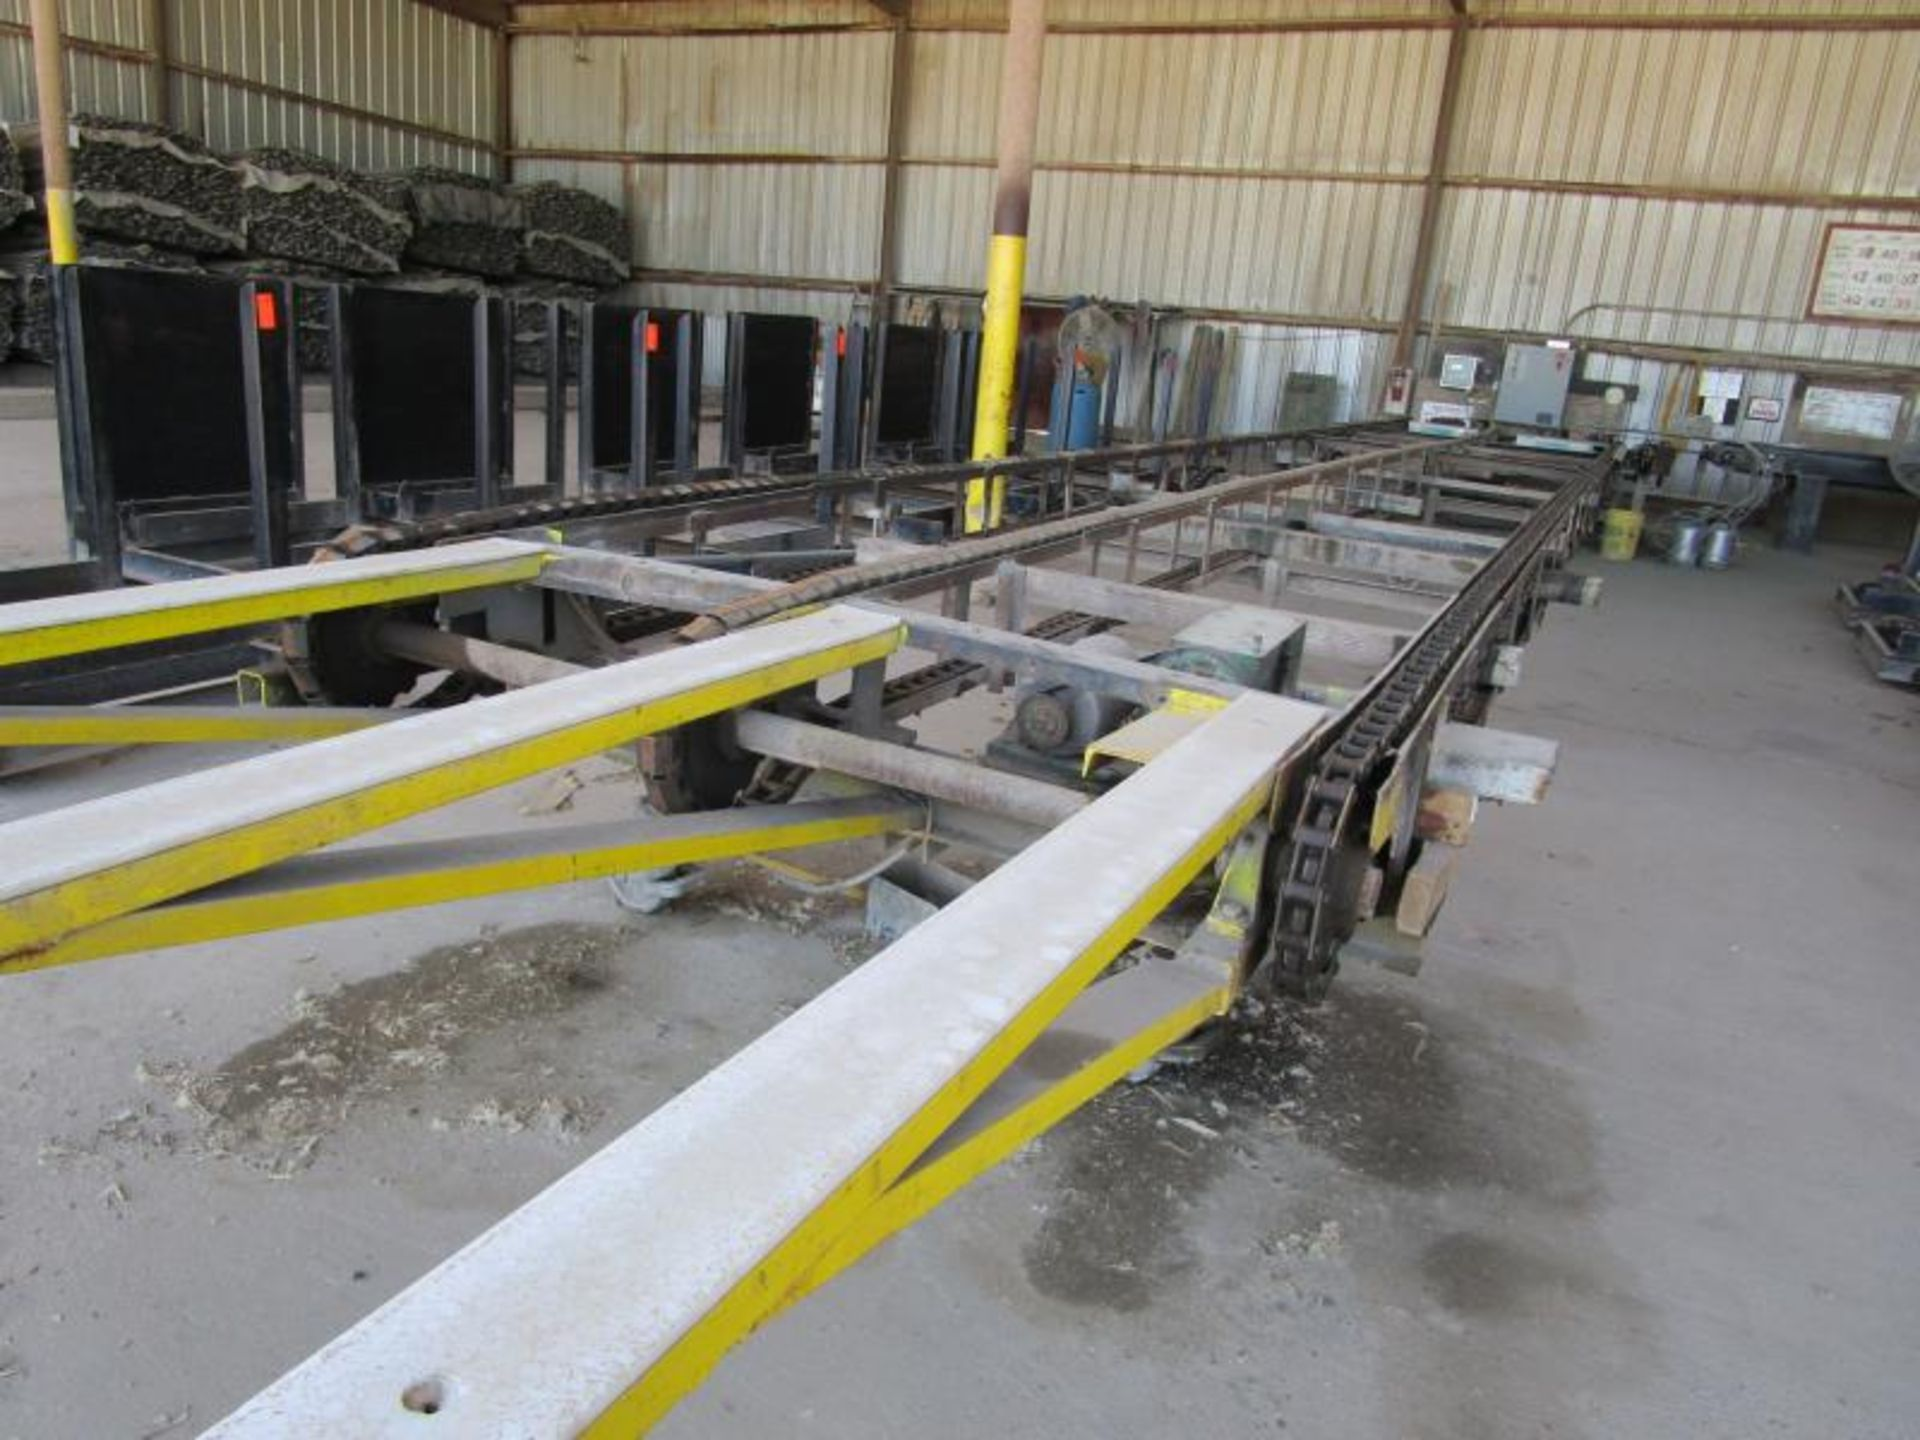 "Lot 27 - Chain Deck with FMI in-line moisture detection by brookhuis m"" 600mm, type transver =1, 6'w x 41'"